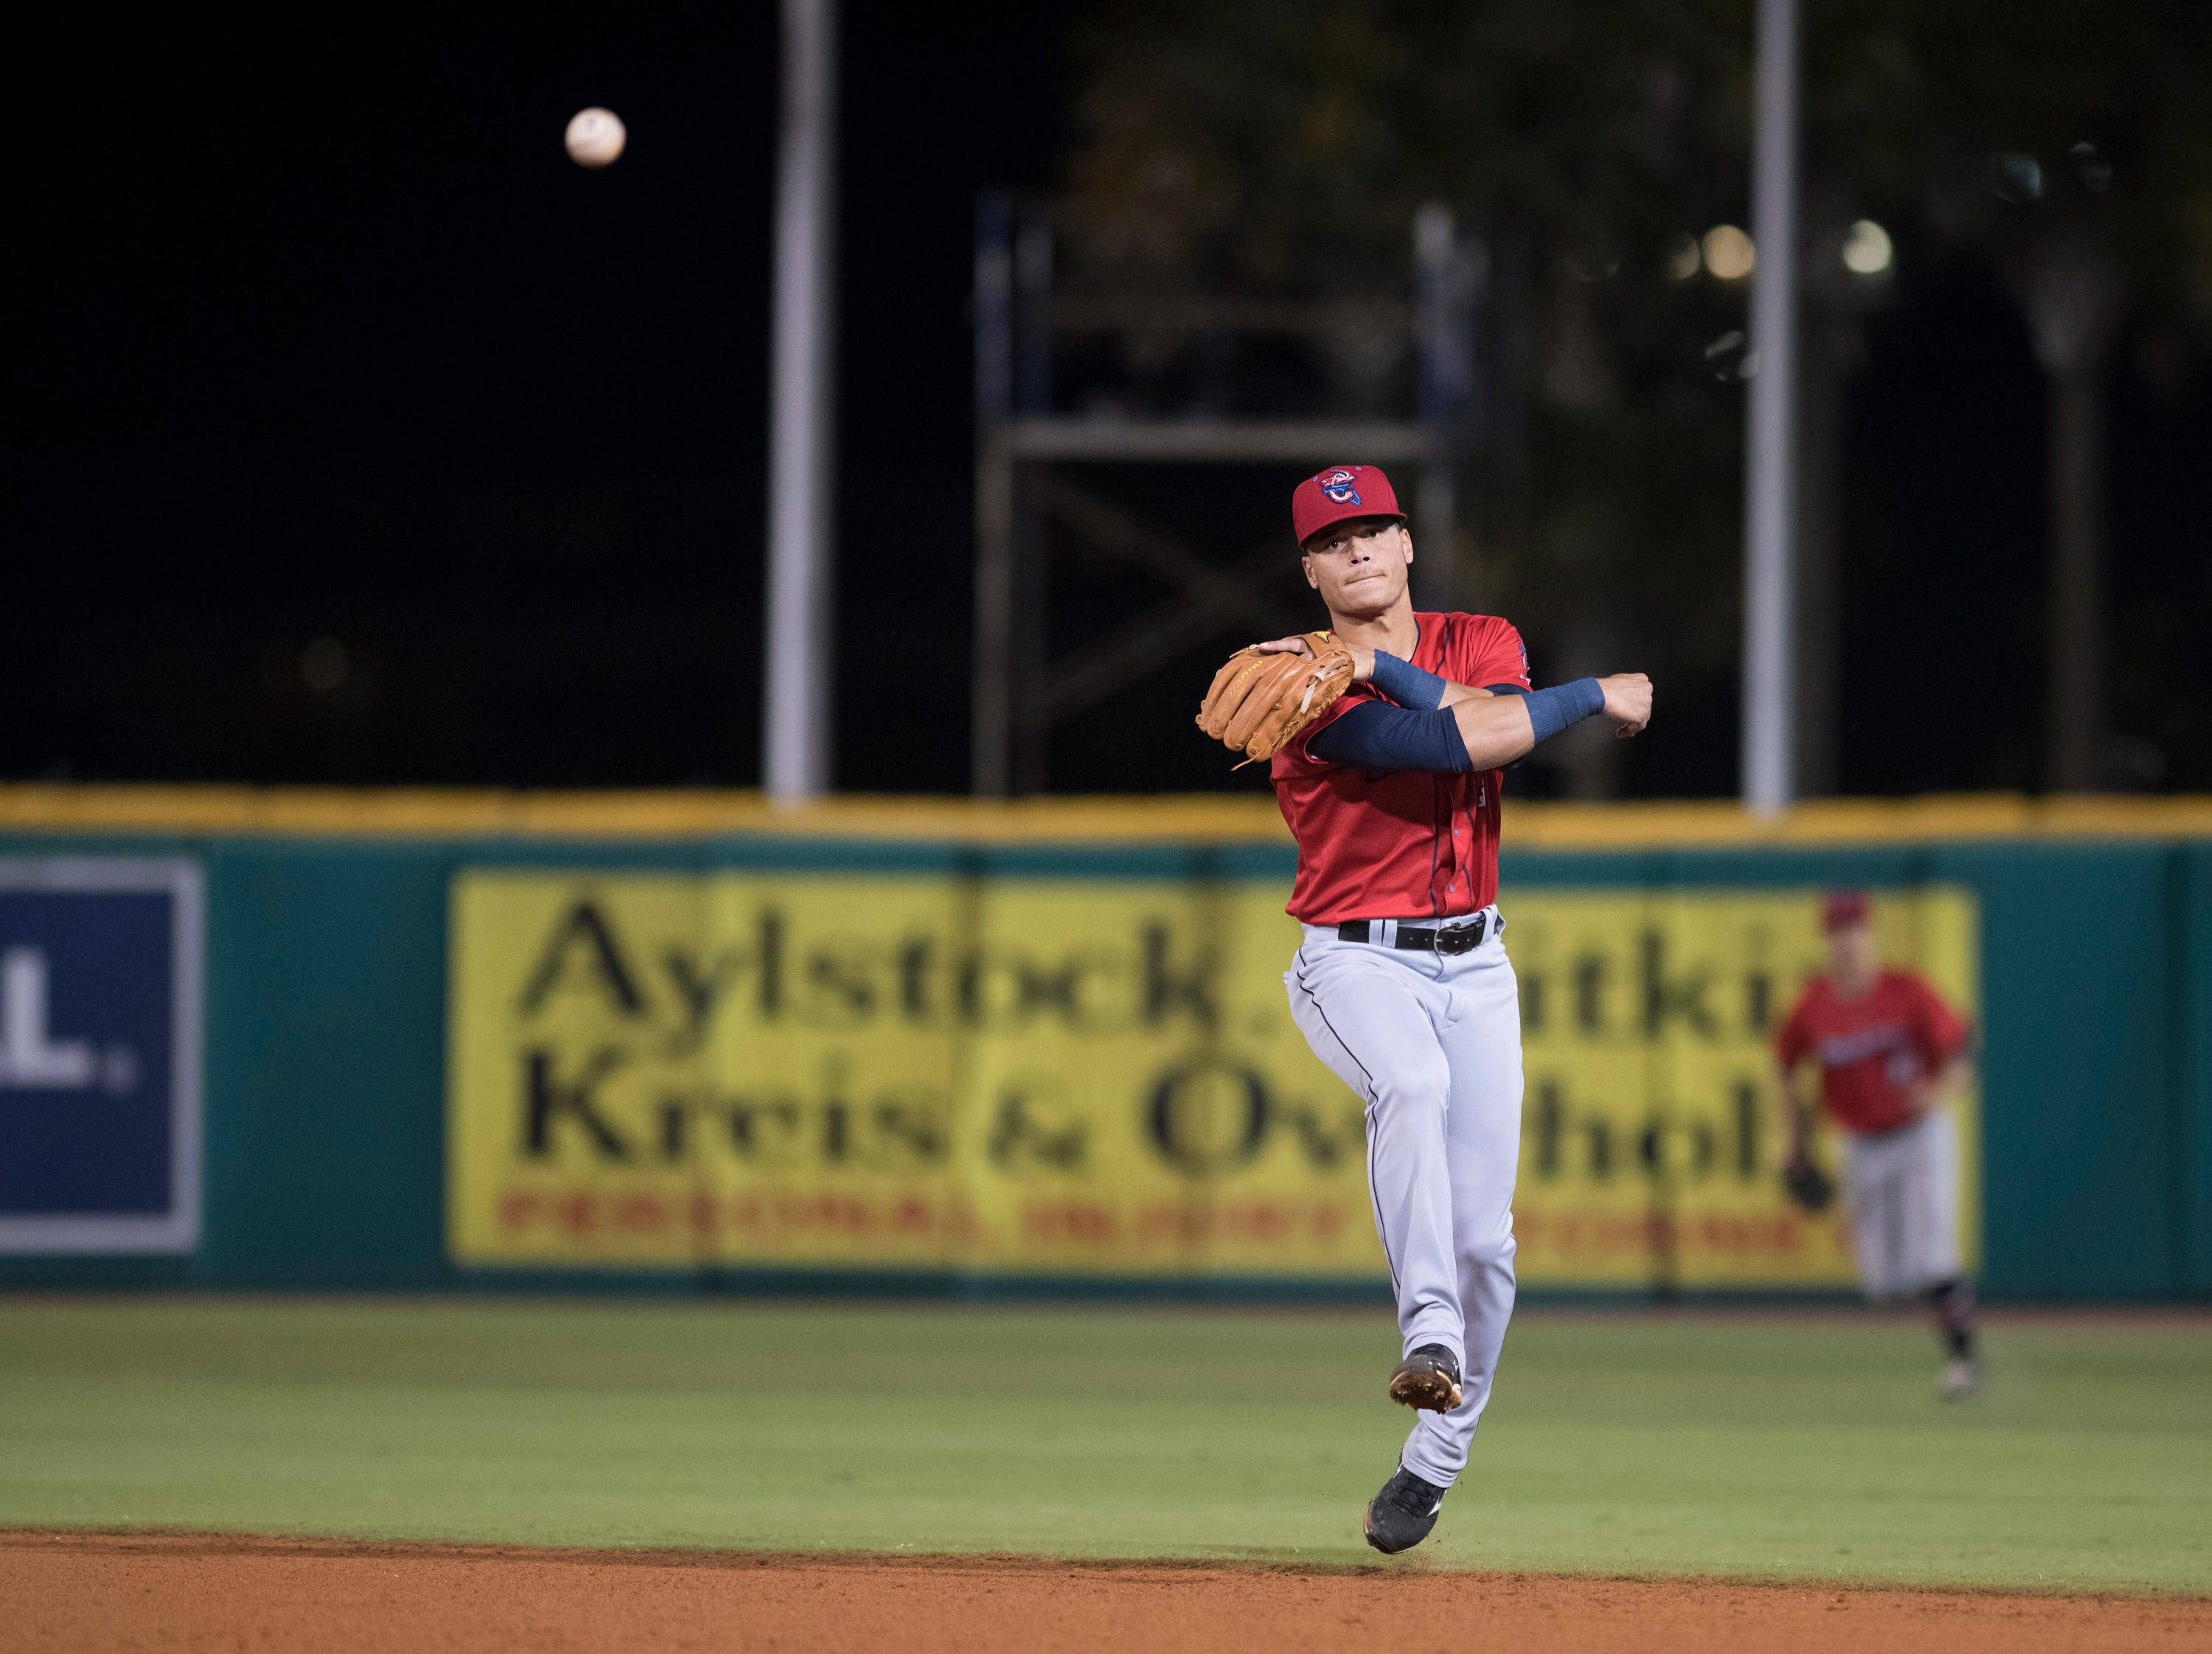 Second baseman Bryson Brigman (6) throws to first base for an out during the Jacksonville Jumbo Shrimp vs Pensacola Blue Wahoos baseball game in Pensacola on Friday, April 12, 2019.